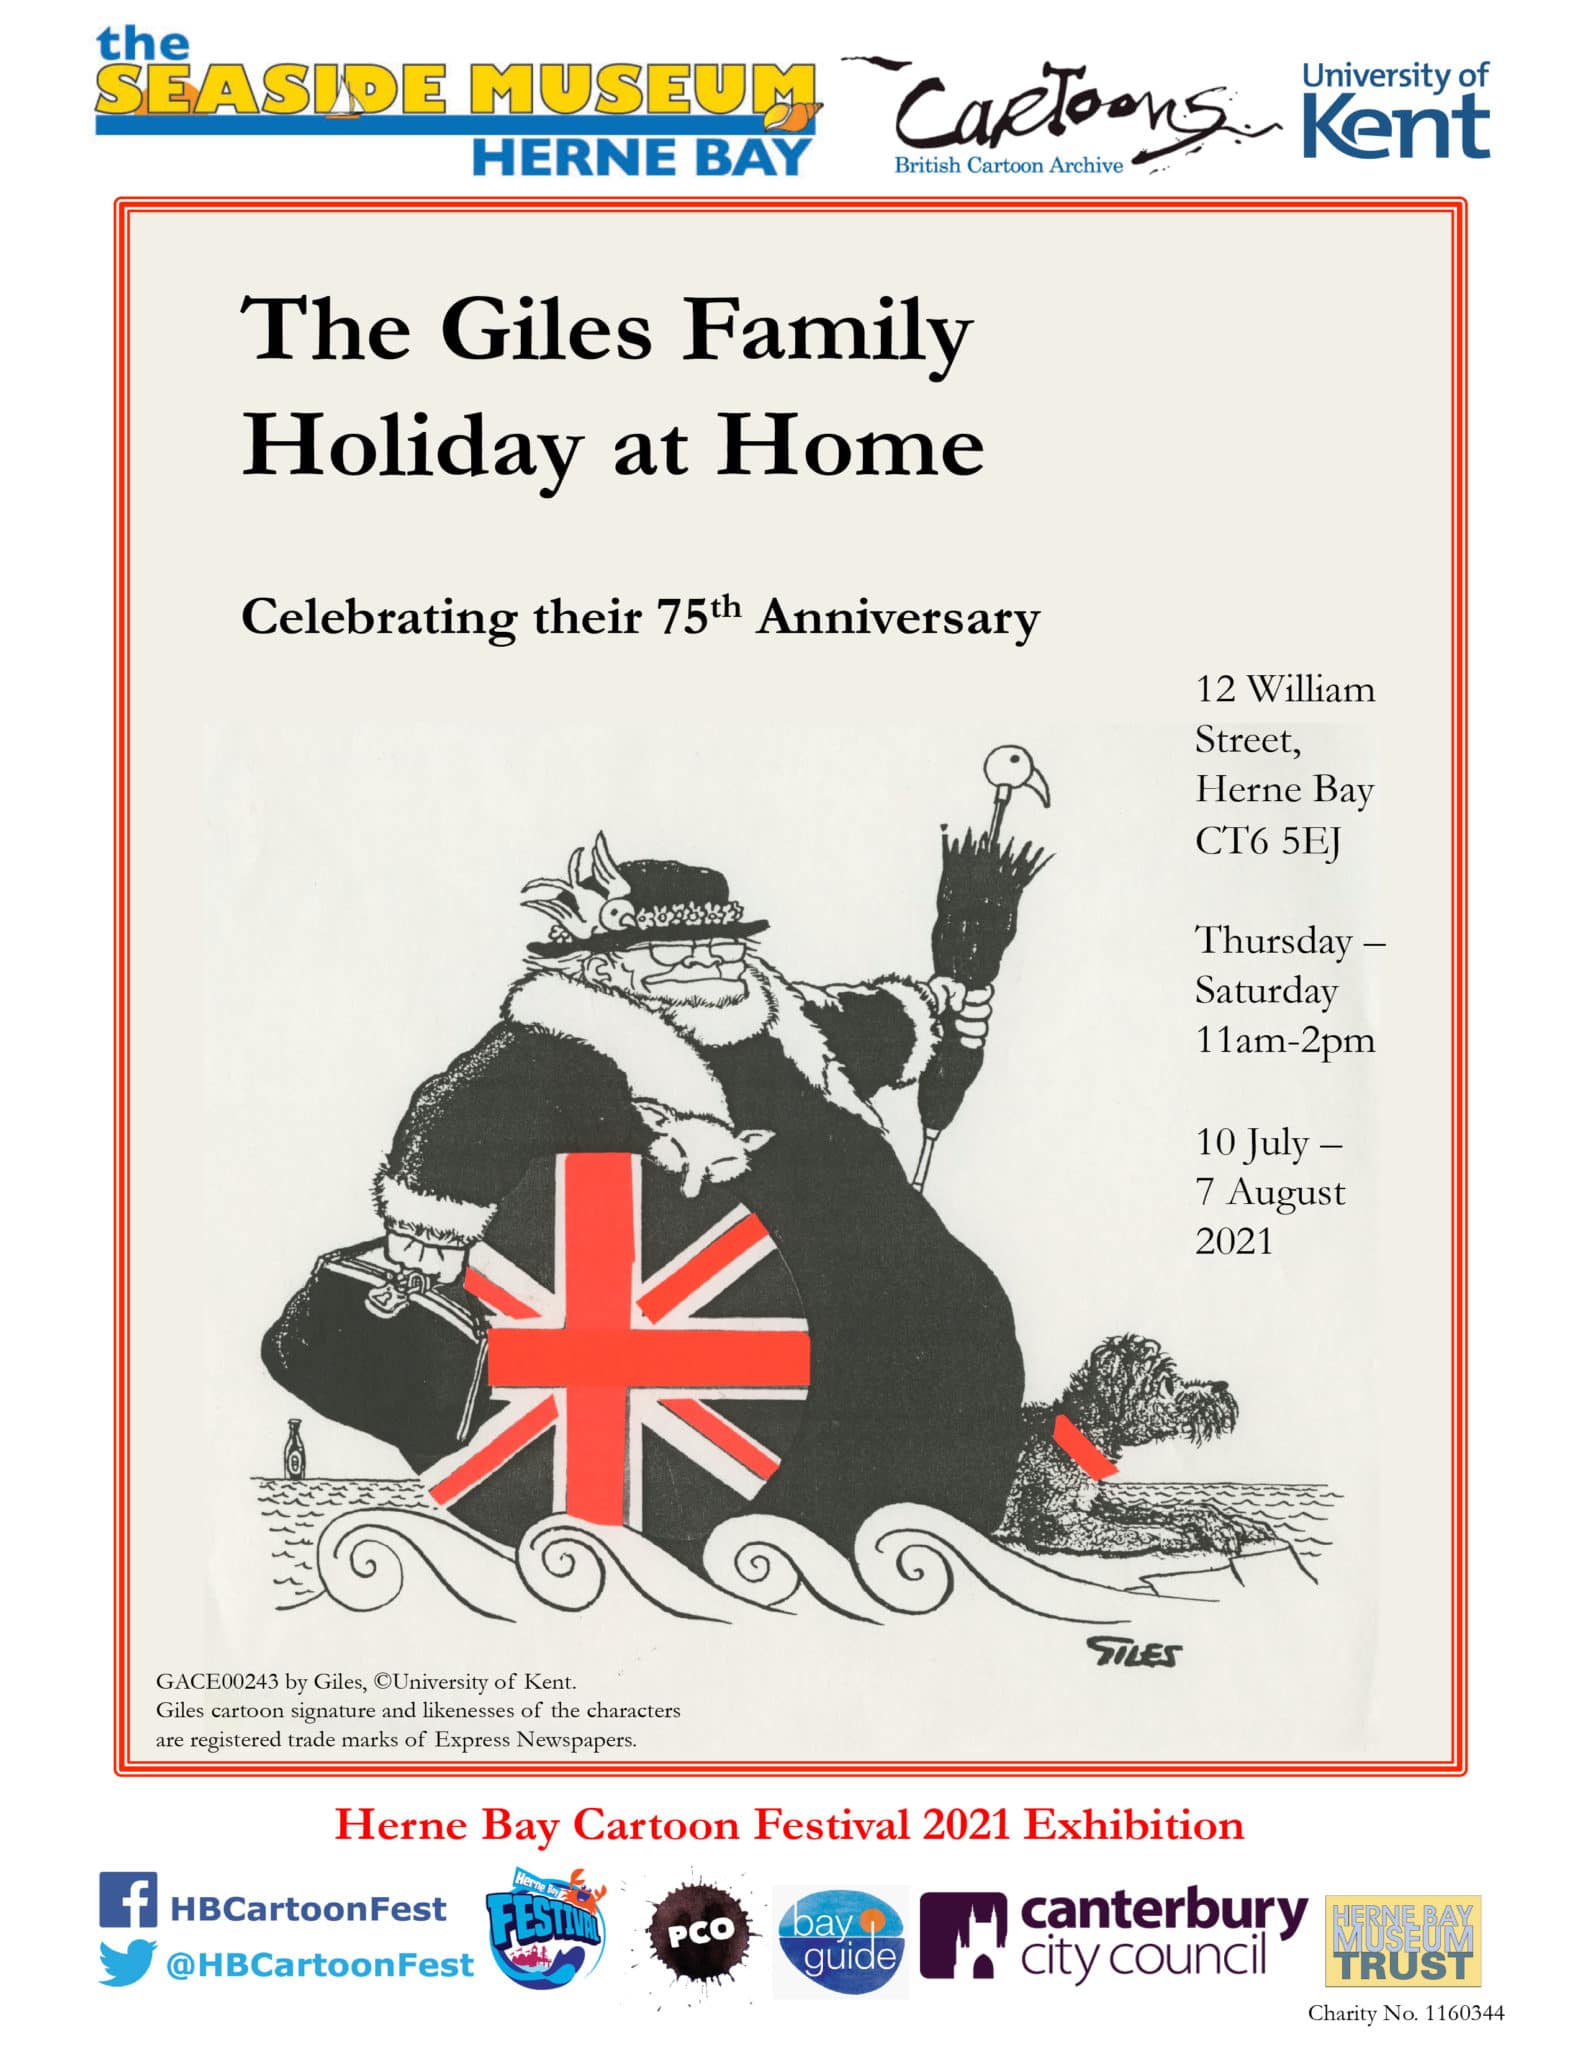 The Giles Family Holiday at Home.